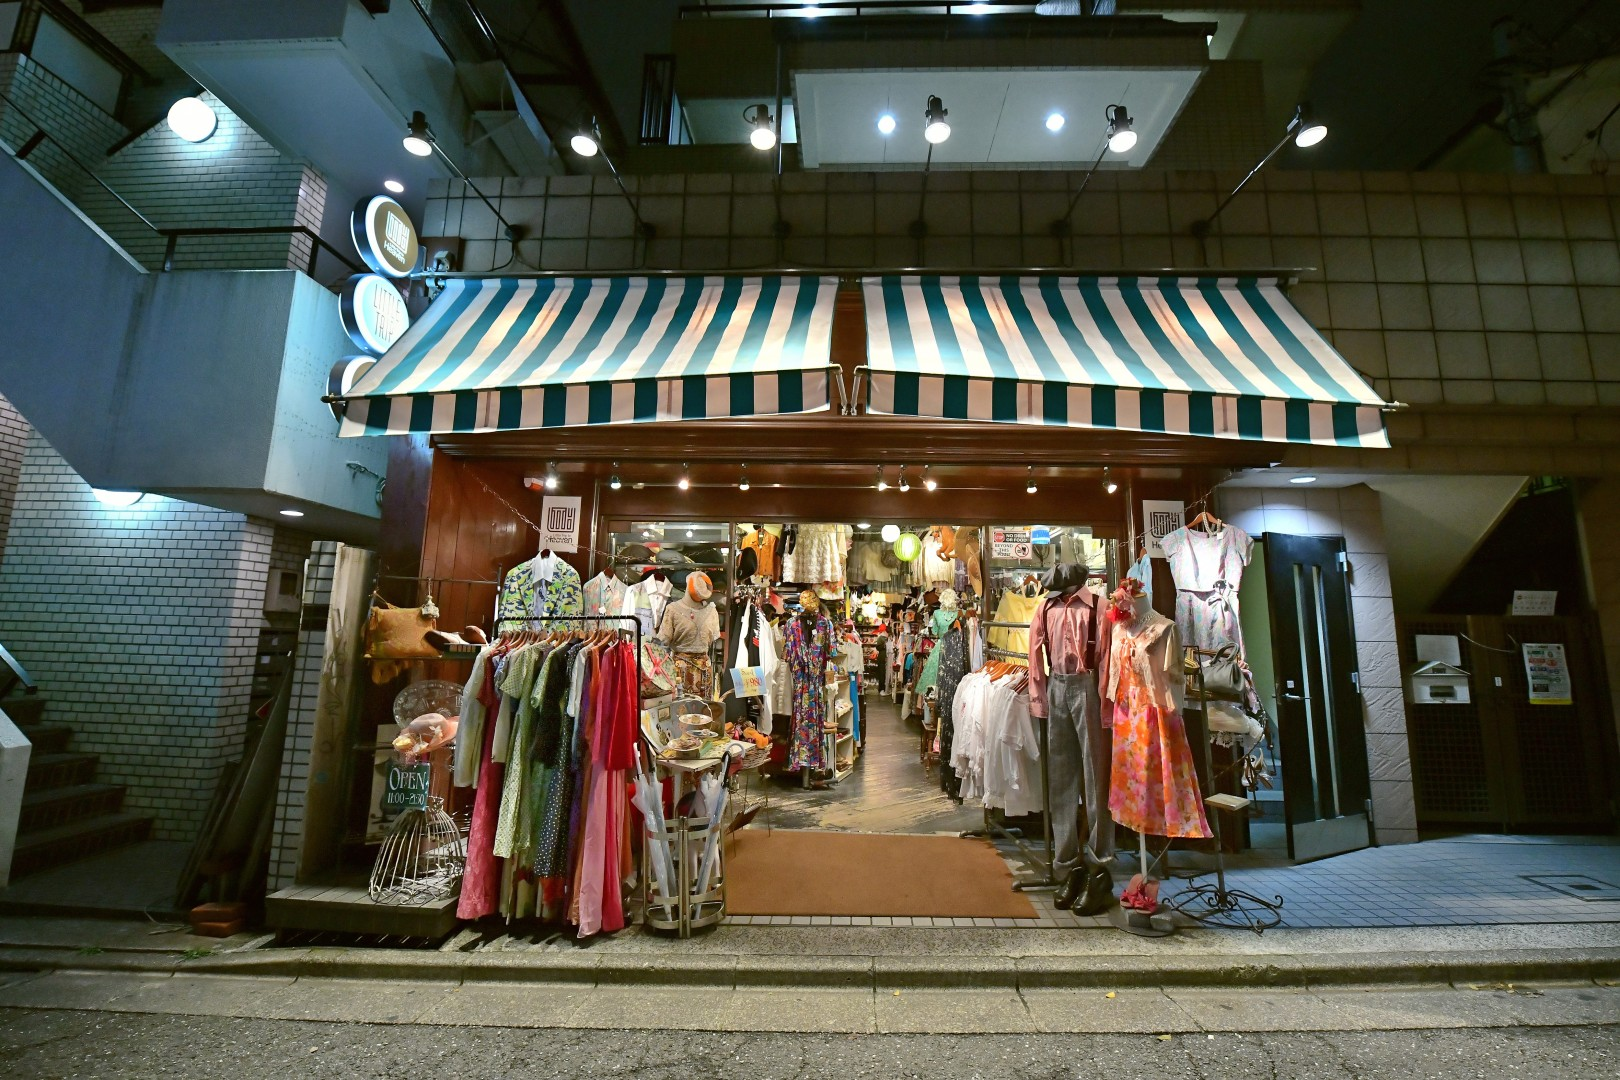 d919c724b9c Tokyo shopping guide  six lesser known fashion districts bursting with  vintage and luxury stores